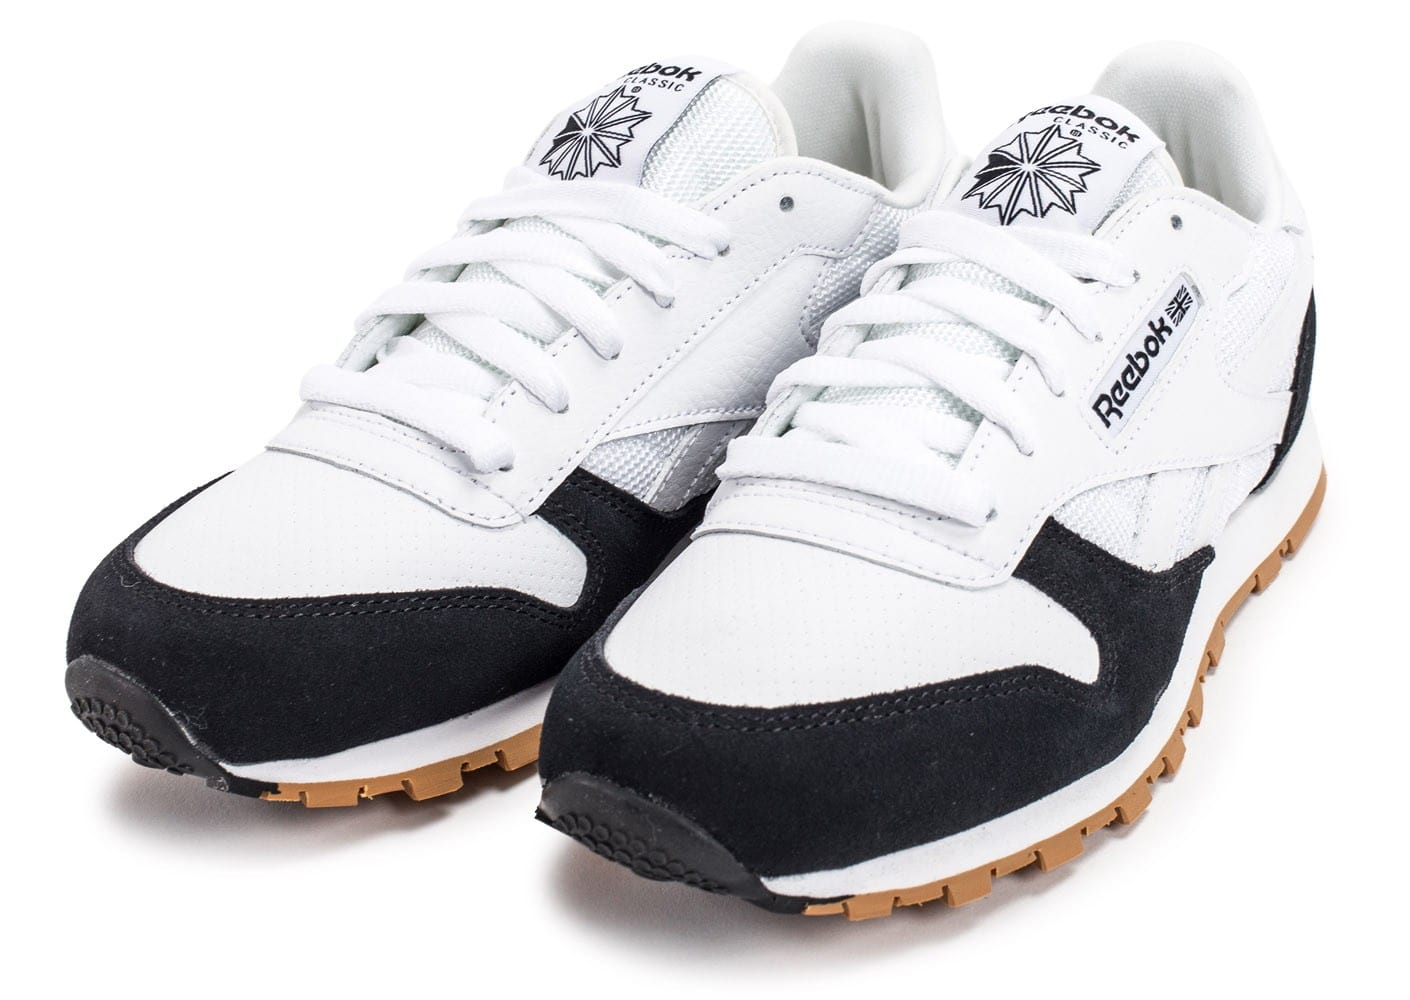 9d51f1942db73 ... femme blanche store 21a01 82803 ... Chaussures Reebok Classic Leather  Perfect ...